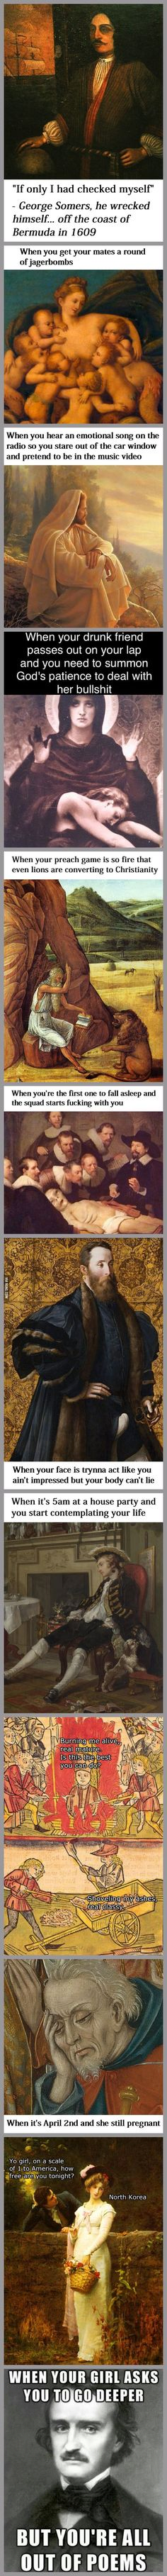 Classical Art Memes Latest (Part-10)